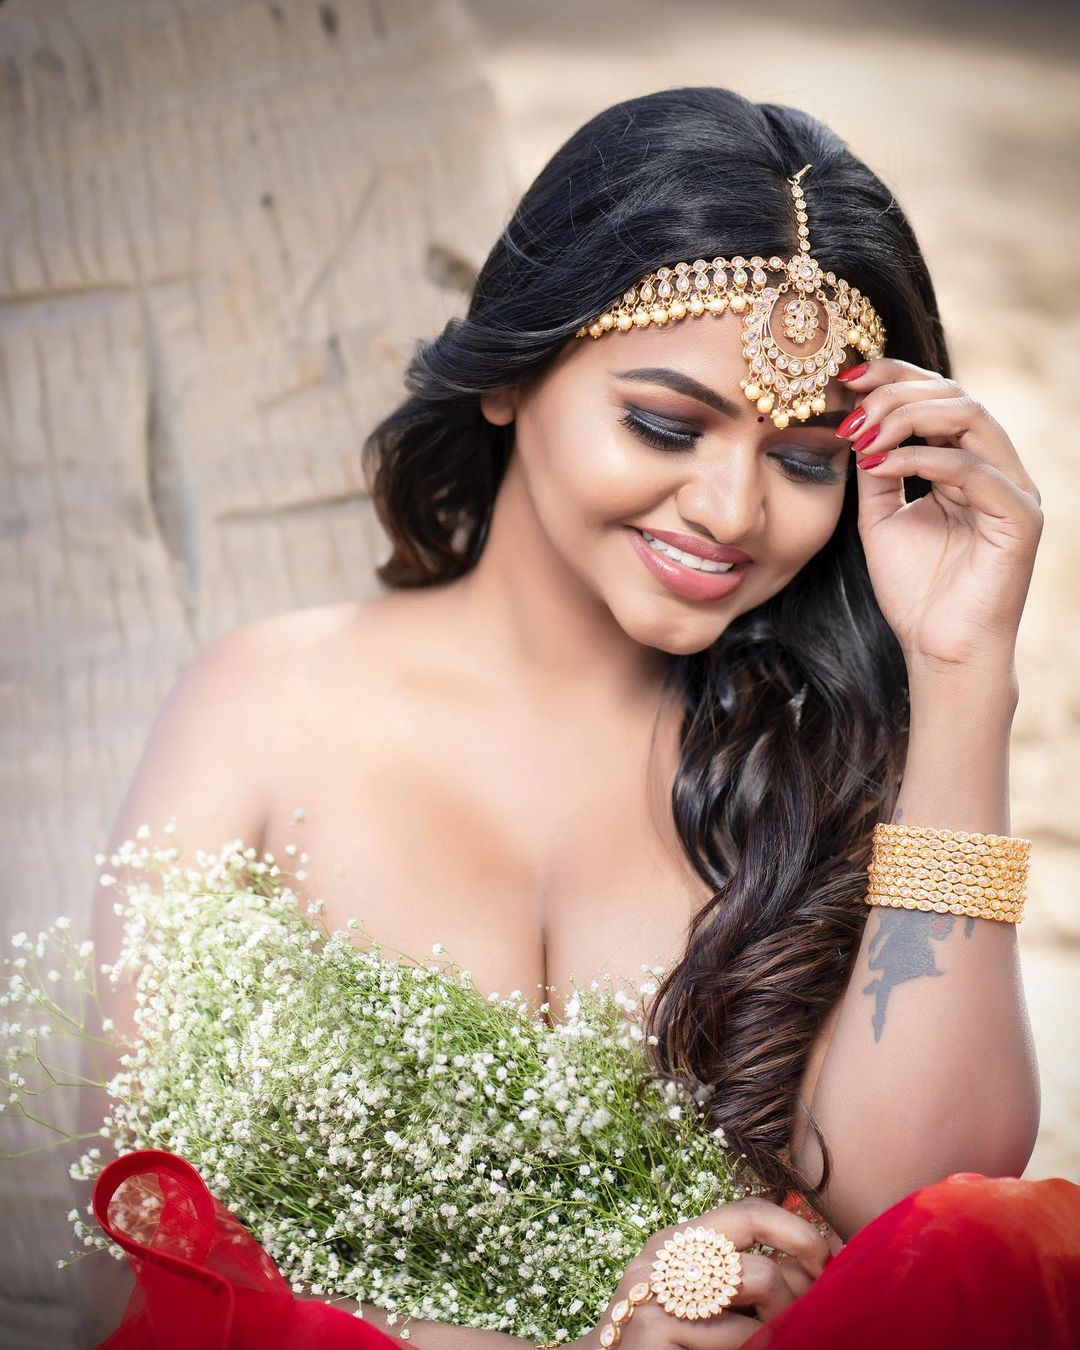 Shalu-Shamu-Valentine-Day-Photoshoot-1